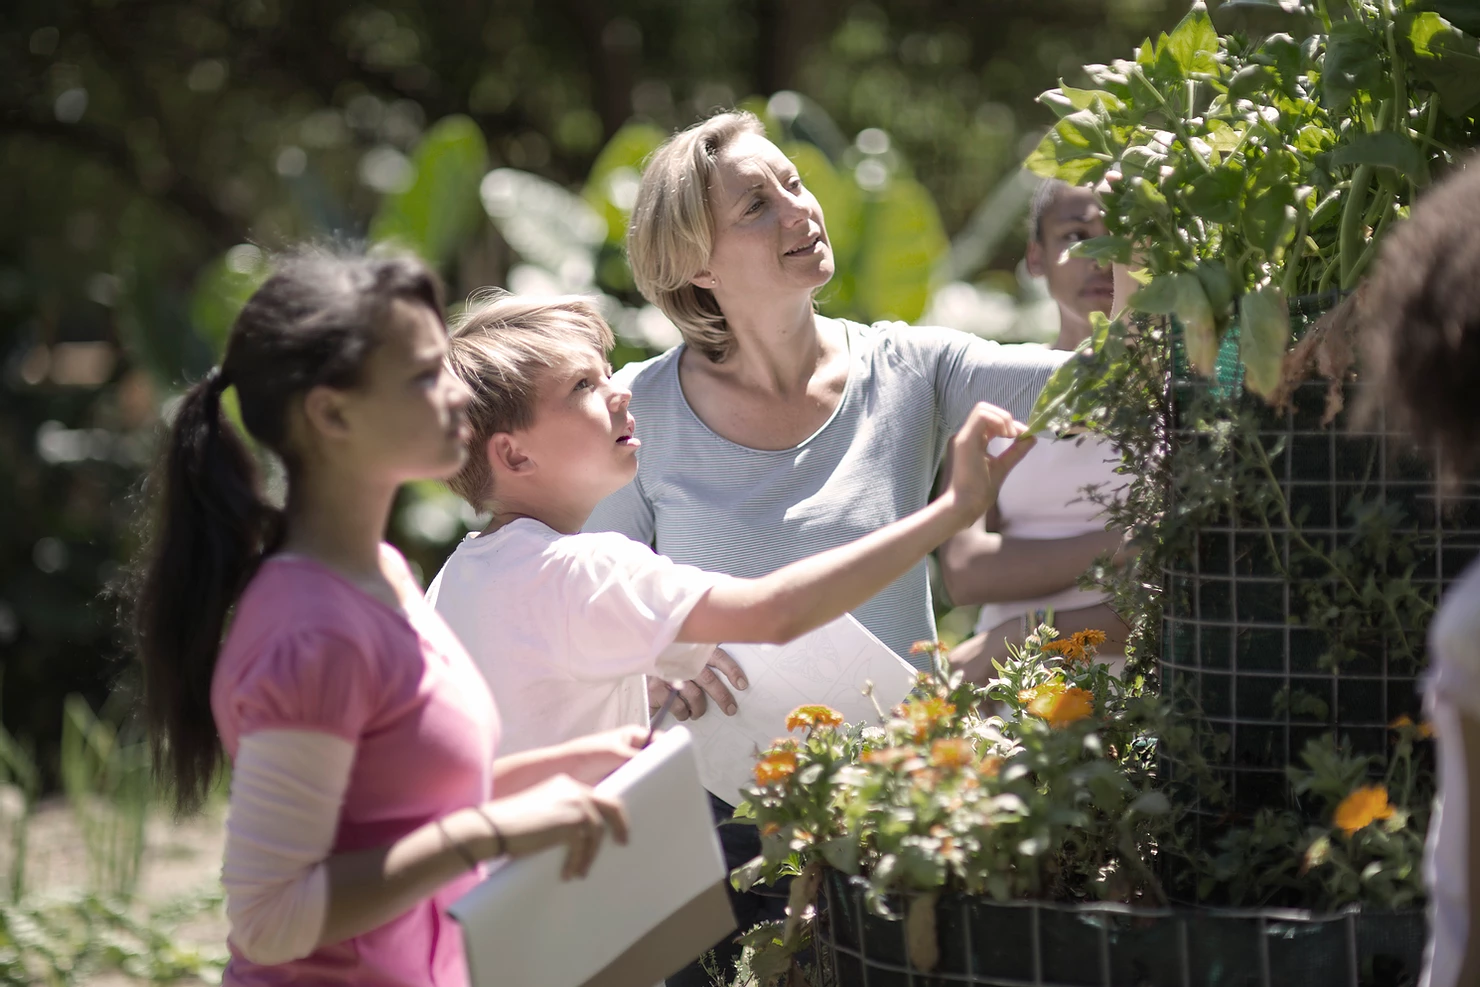 Going beyond Environmental Education: Planetary Health Learning in the Health Sector